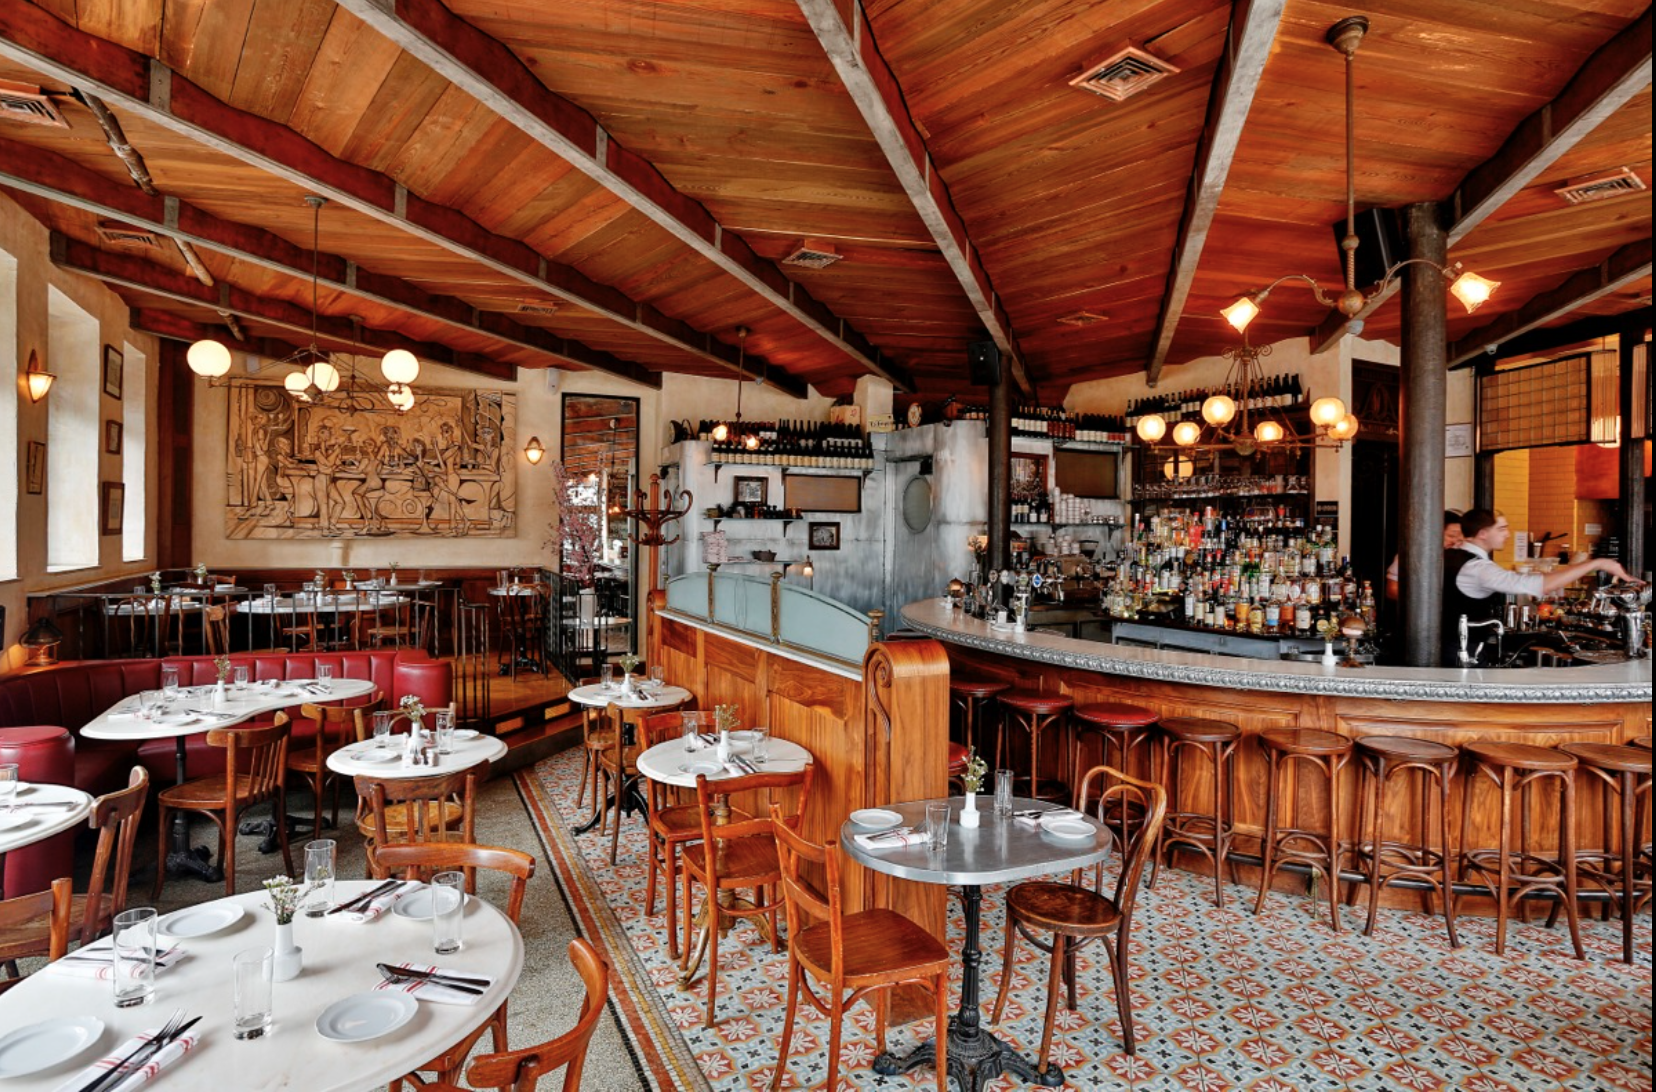 This is an inspiration shot of a restaurant in Williamsburg, Brooklyn that mixes floor tiles and features raised wood floor areas and upholstered (short) banquettes.  The tone of the wood is different but it gives a sense of how a more colorful tile plays in the space. Source: http://www.witlofnyc.com/galleries/restaurant